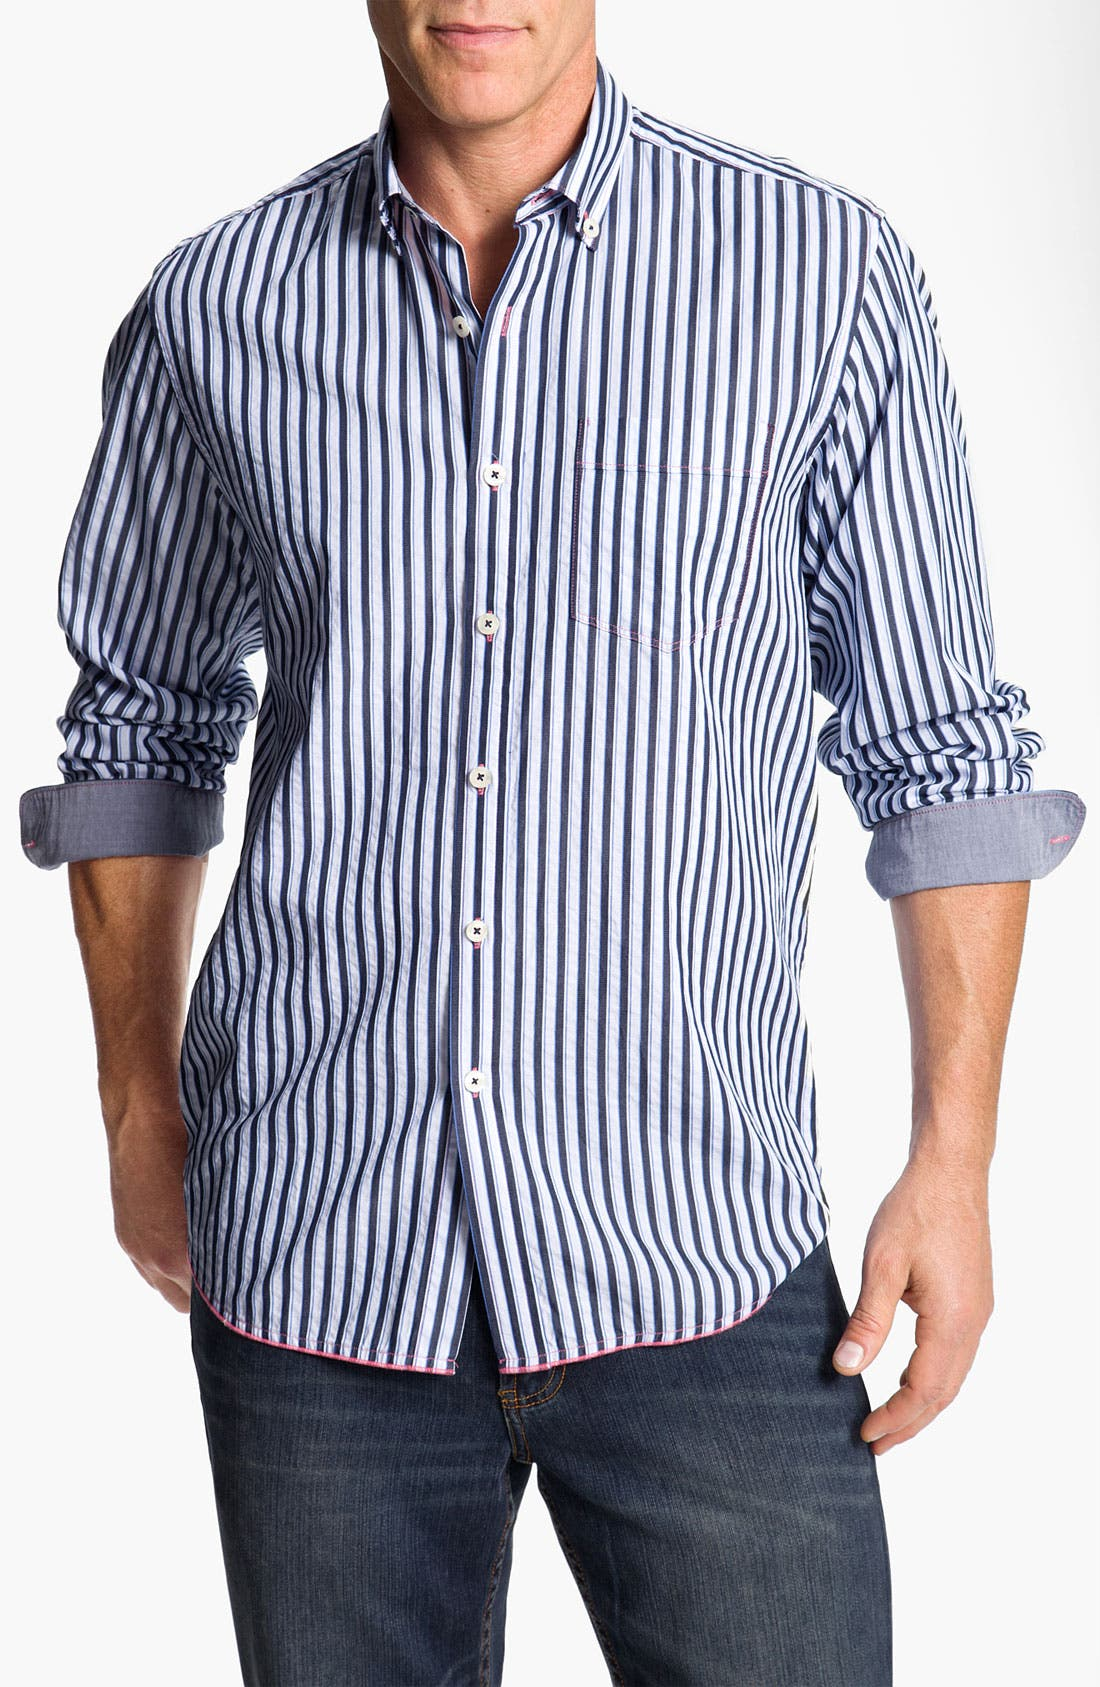 Main Image - Tommy Bahama Denim 'Dalat Stripe' Sport Shirt